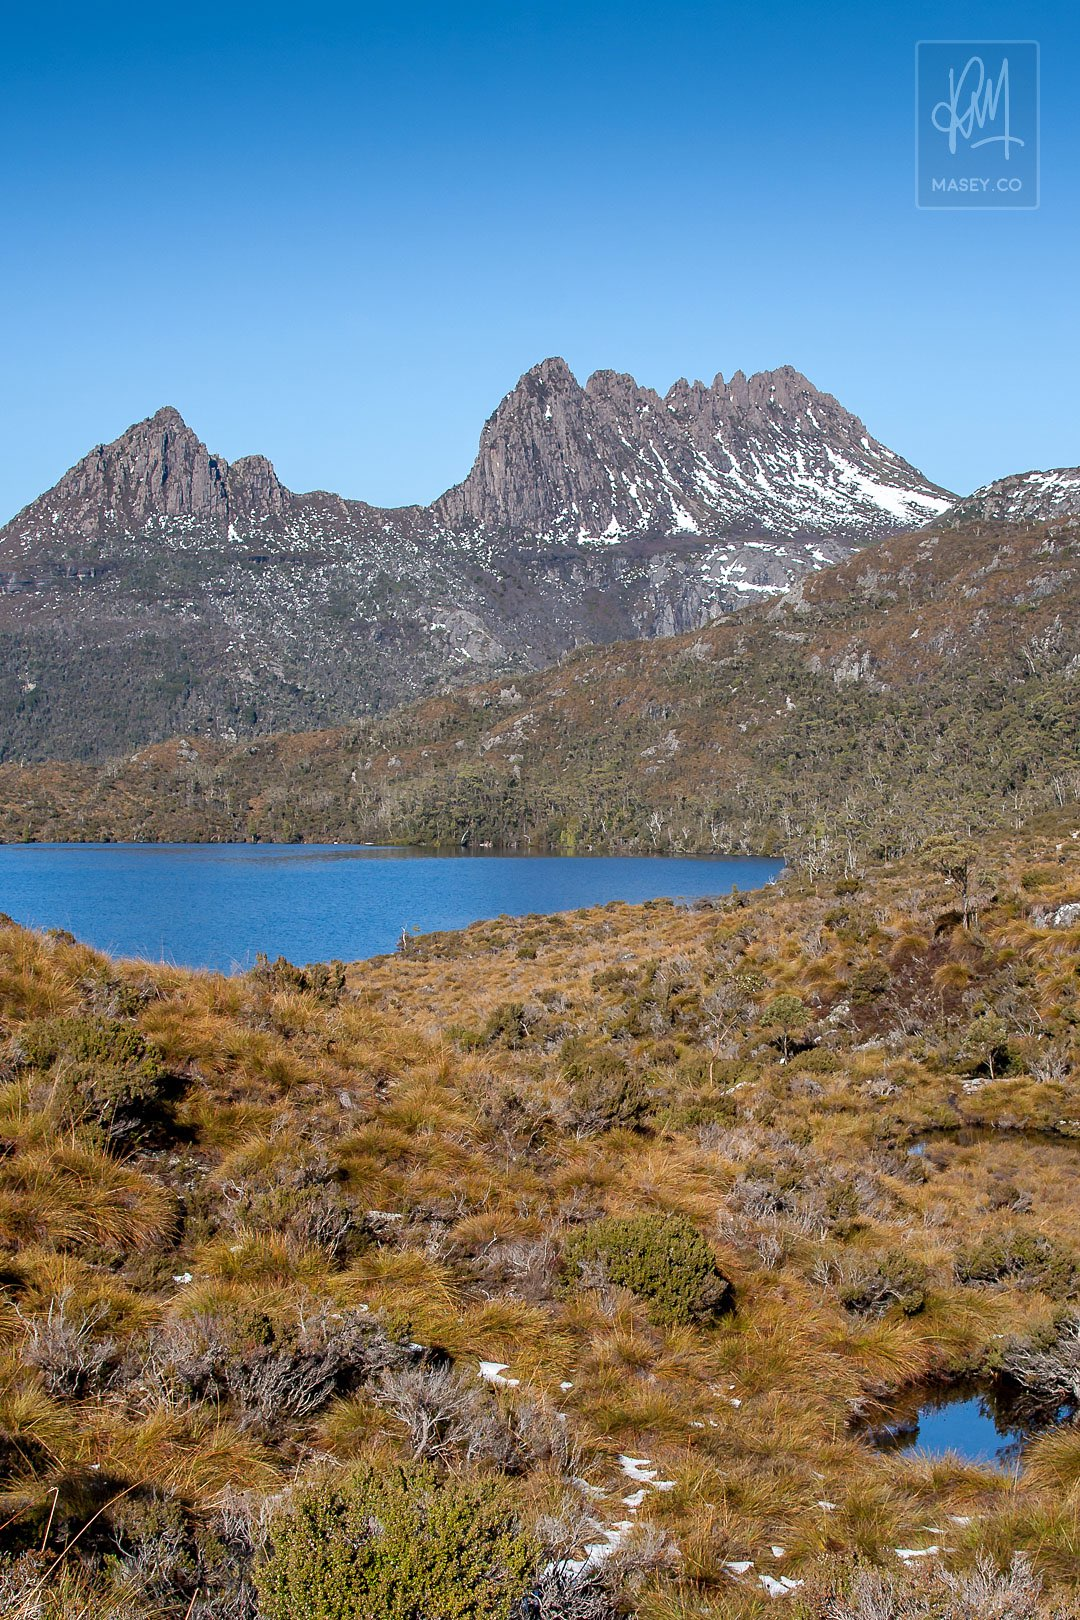 A view of cradle mountain in the distance